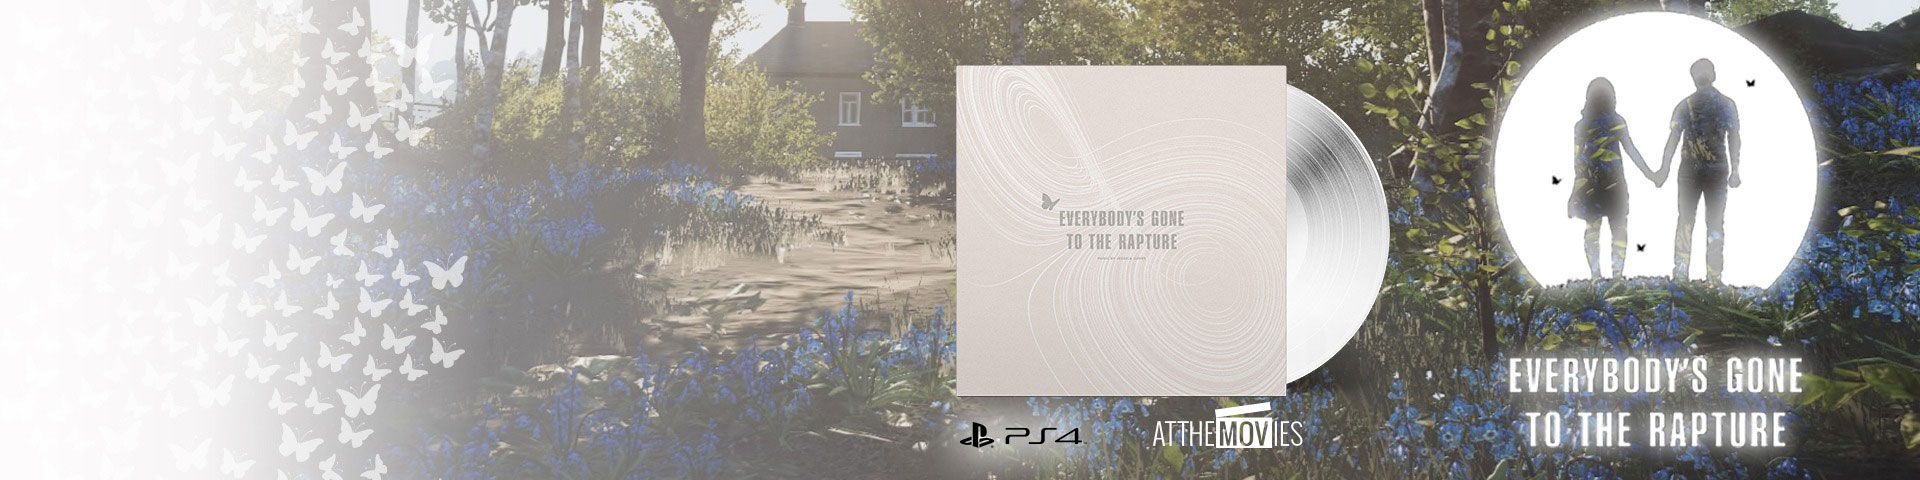 EVERYBODY'S GONE -TO THE RAPTURE